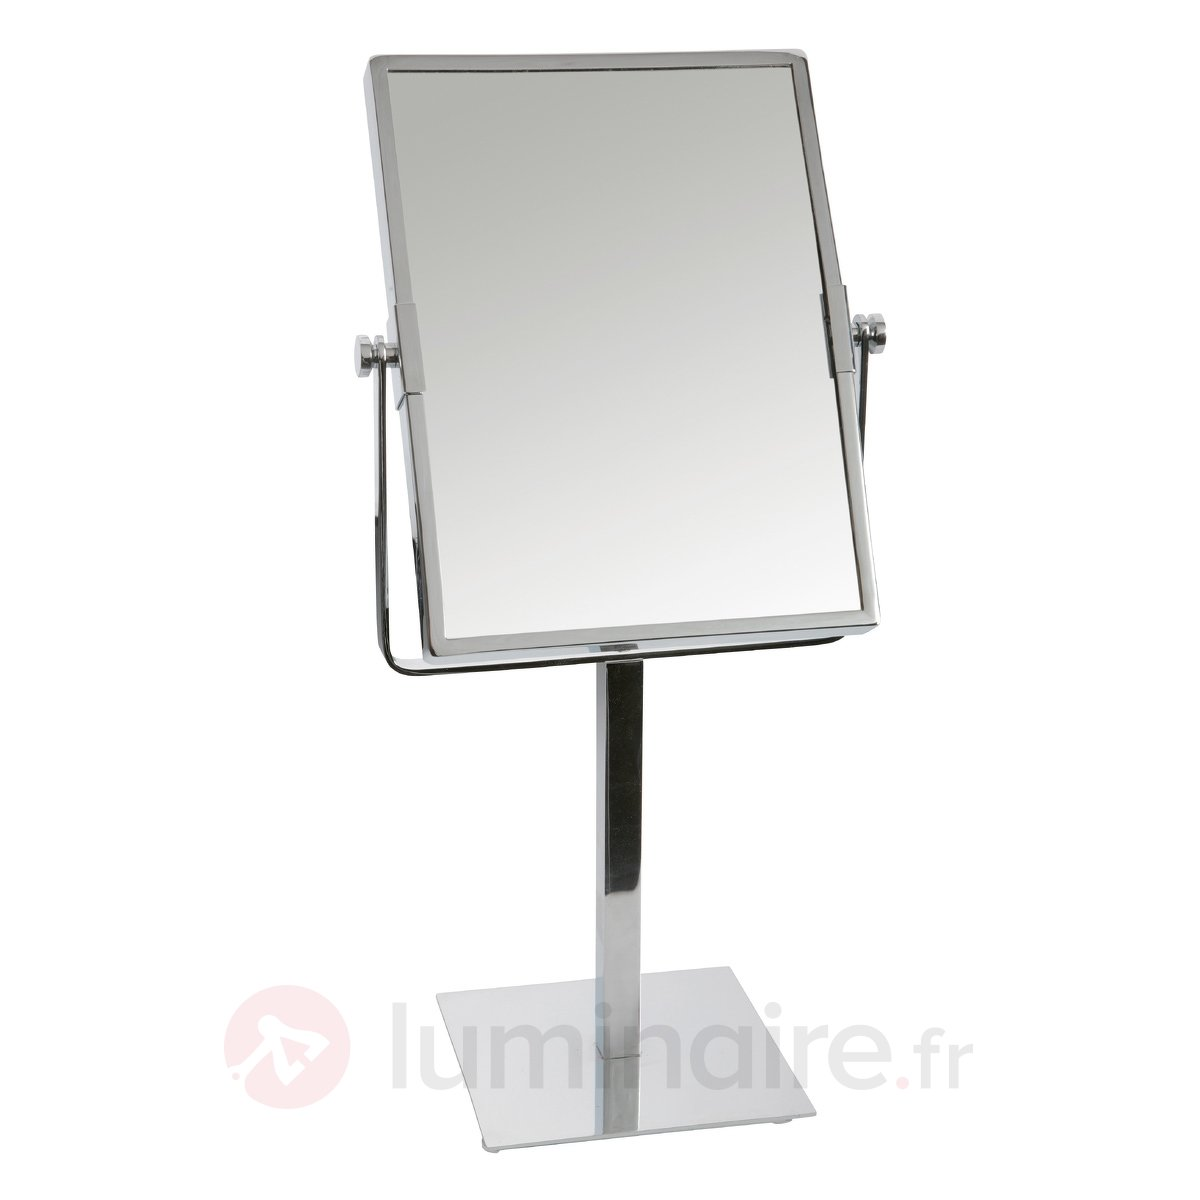 Miroir sur pied id es de d coration int rieure french for Miroir in french